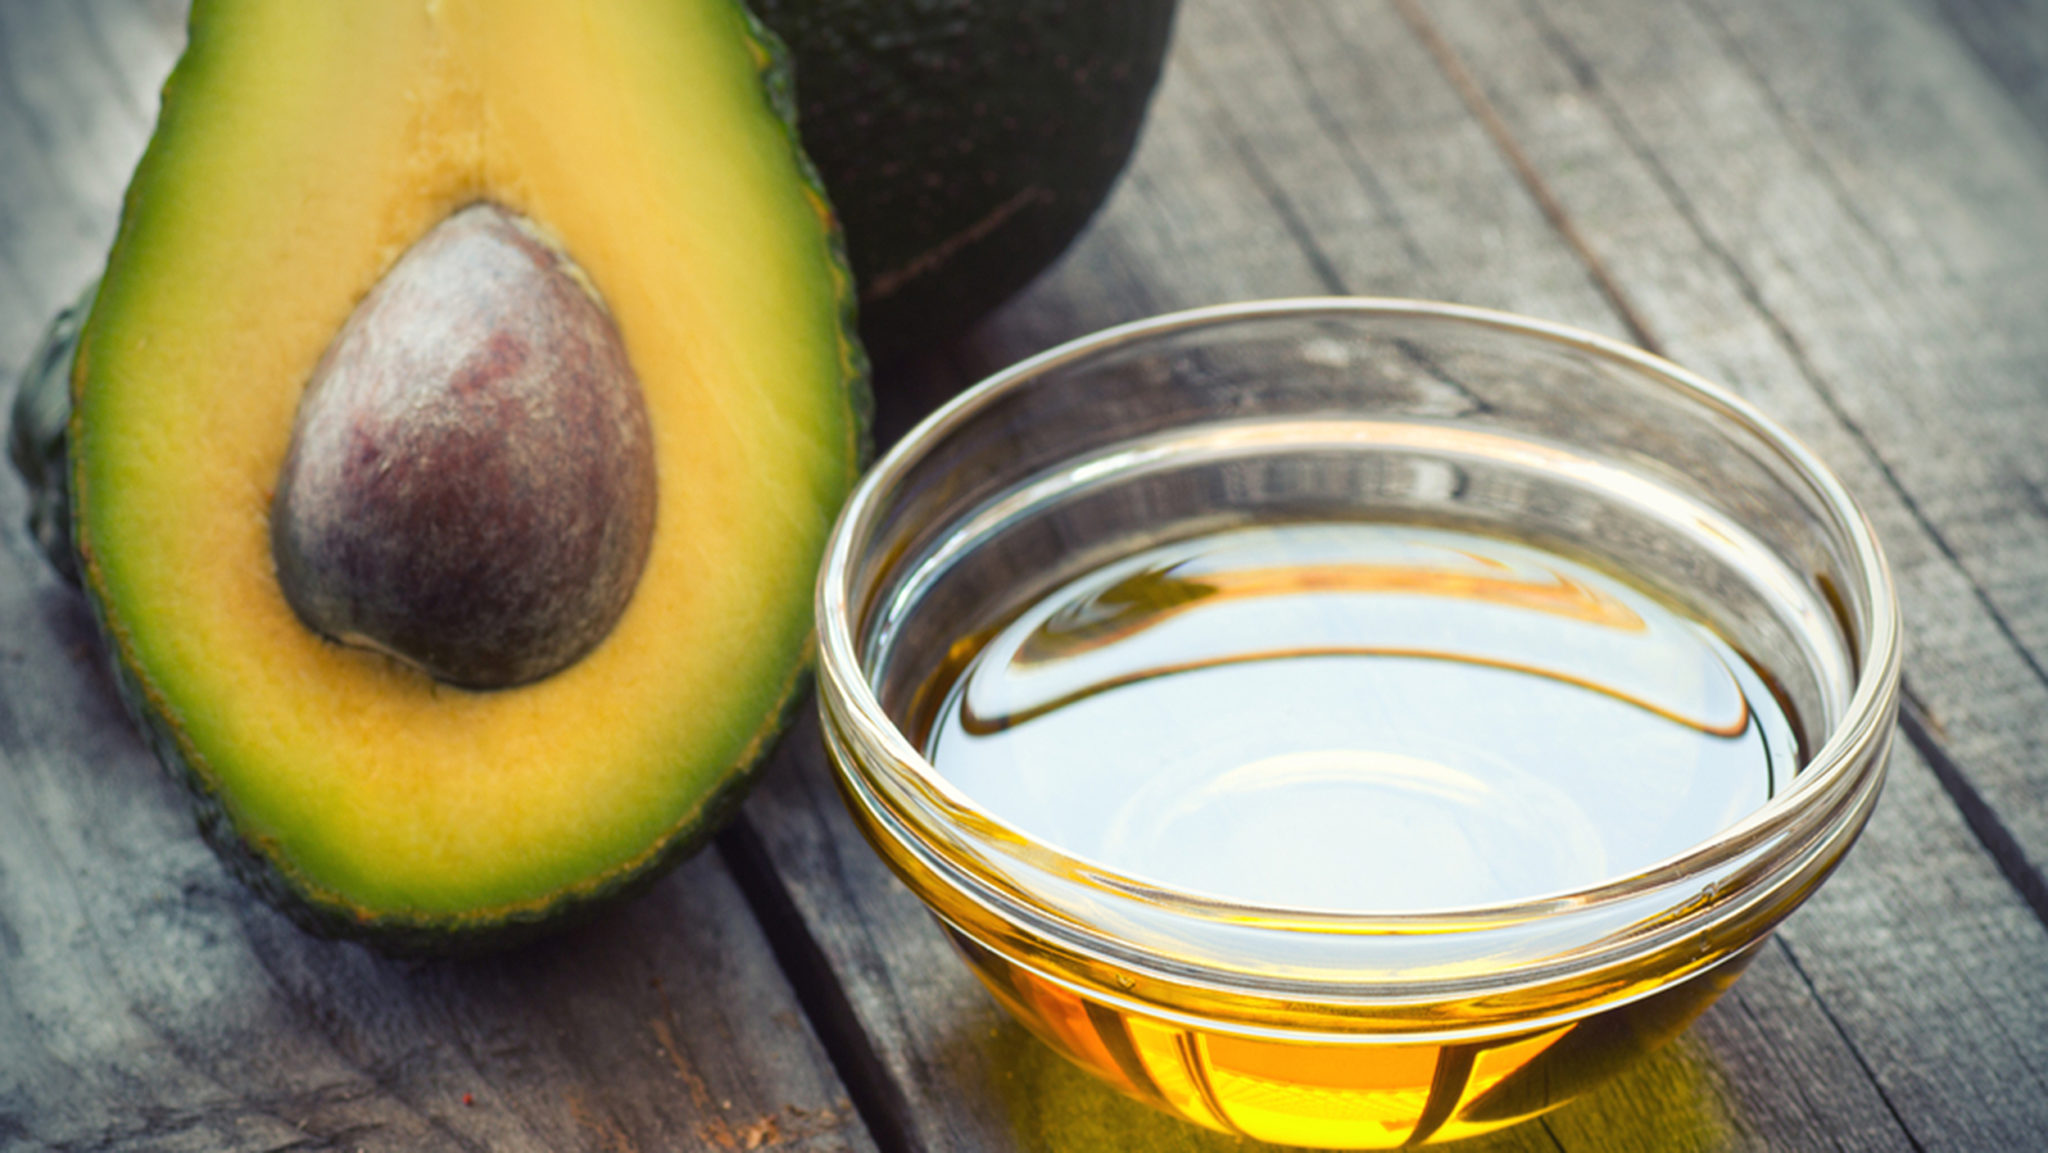 10 Things You Need to Know About Delicious Avocados! 51